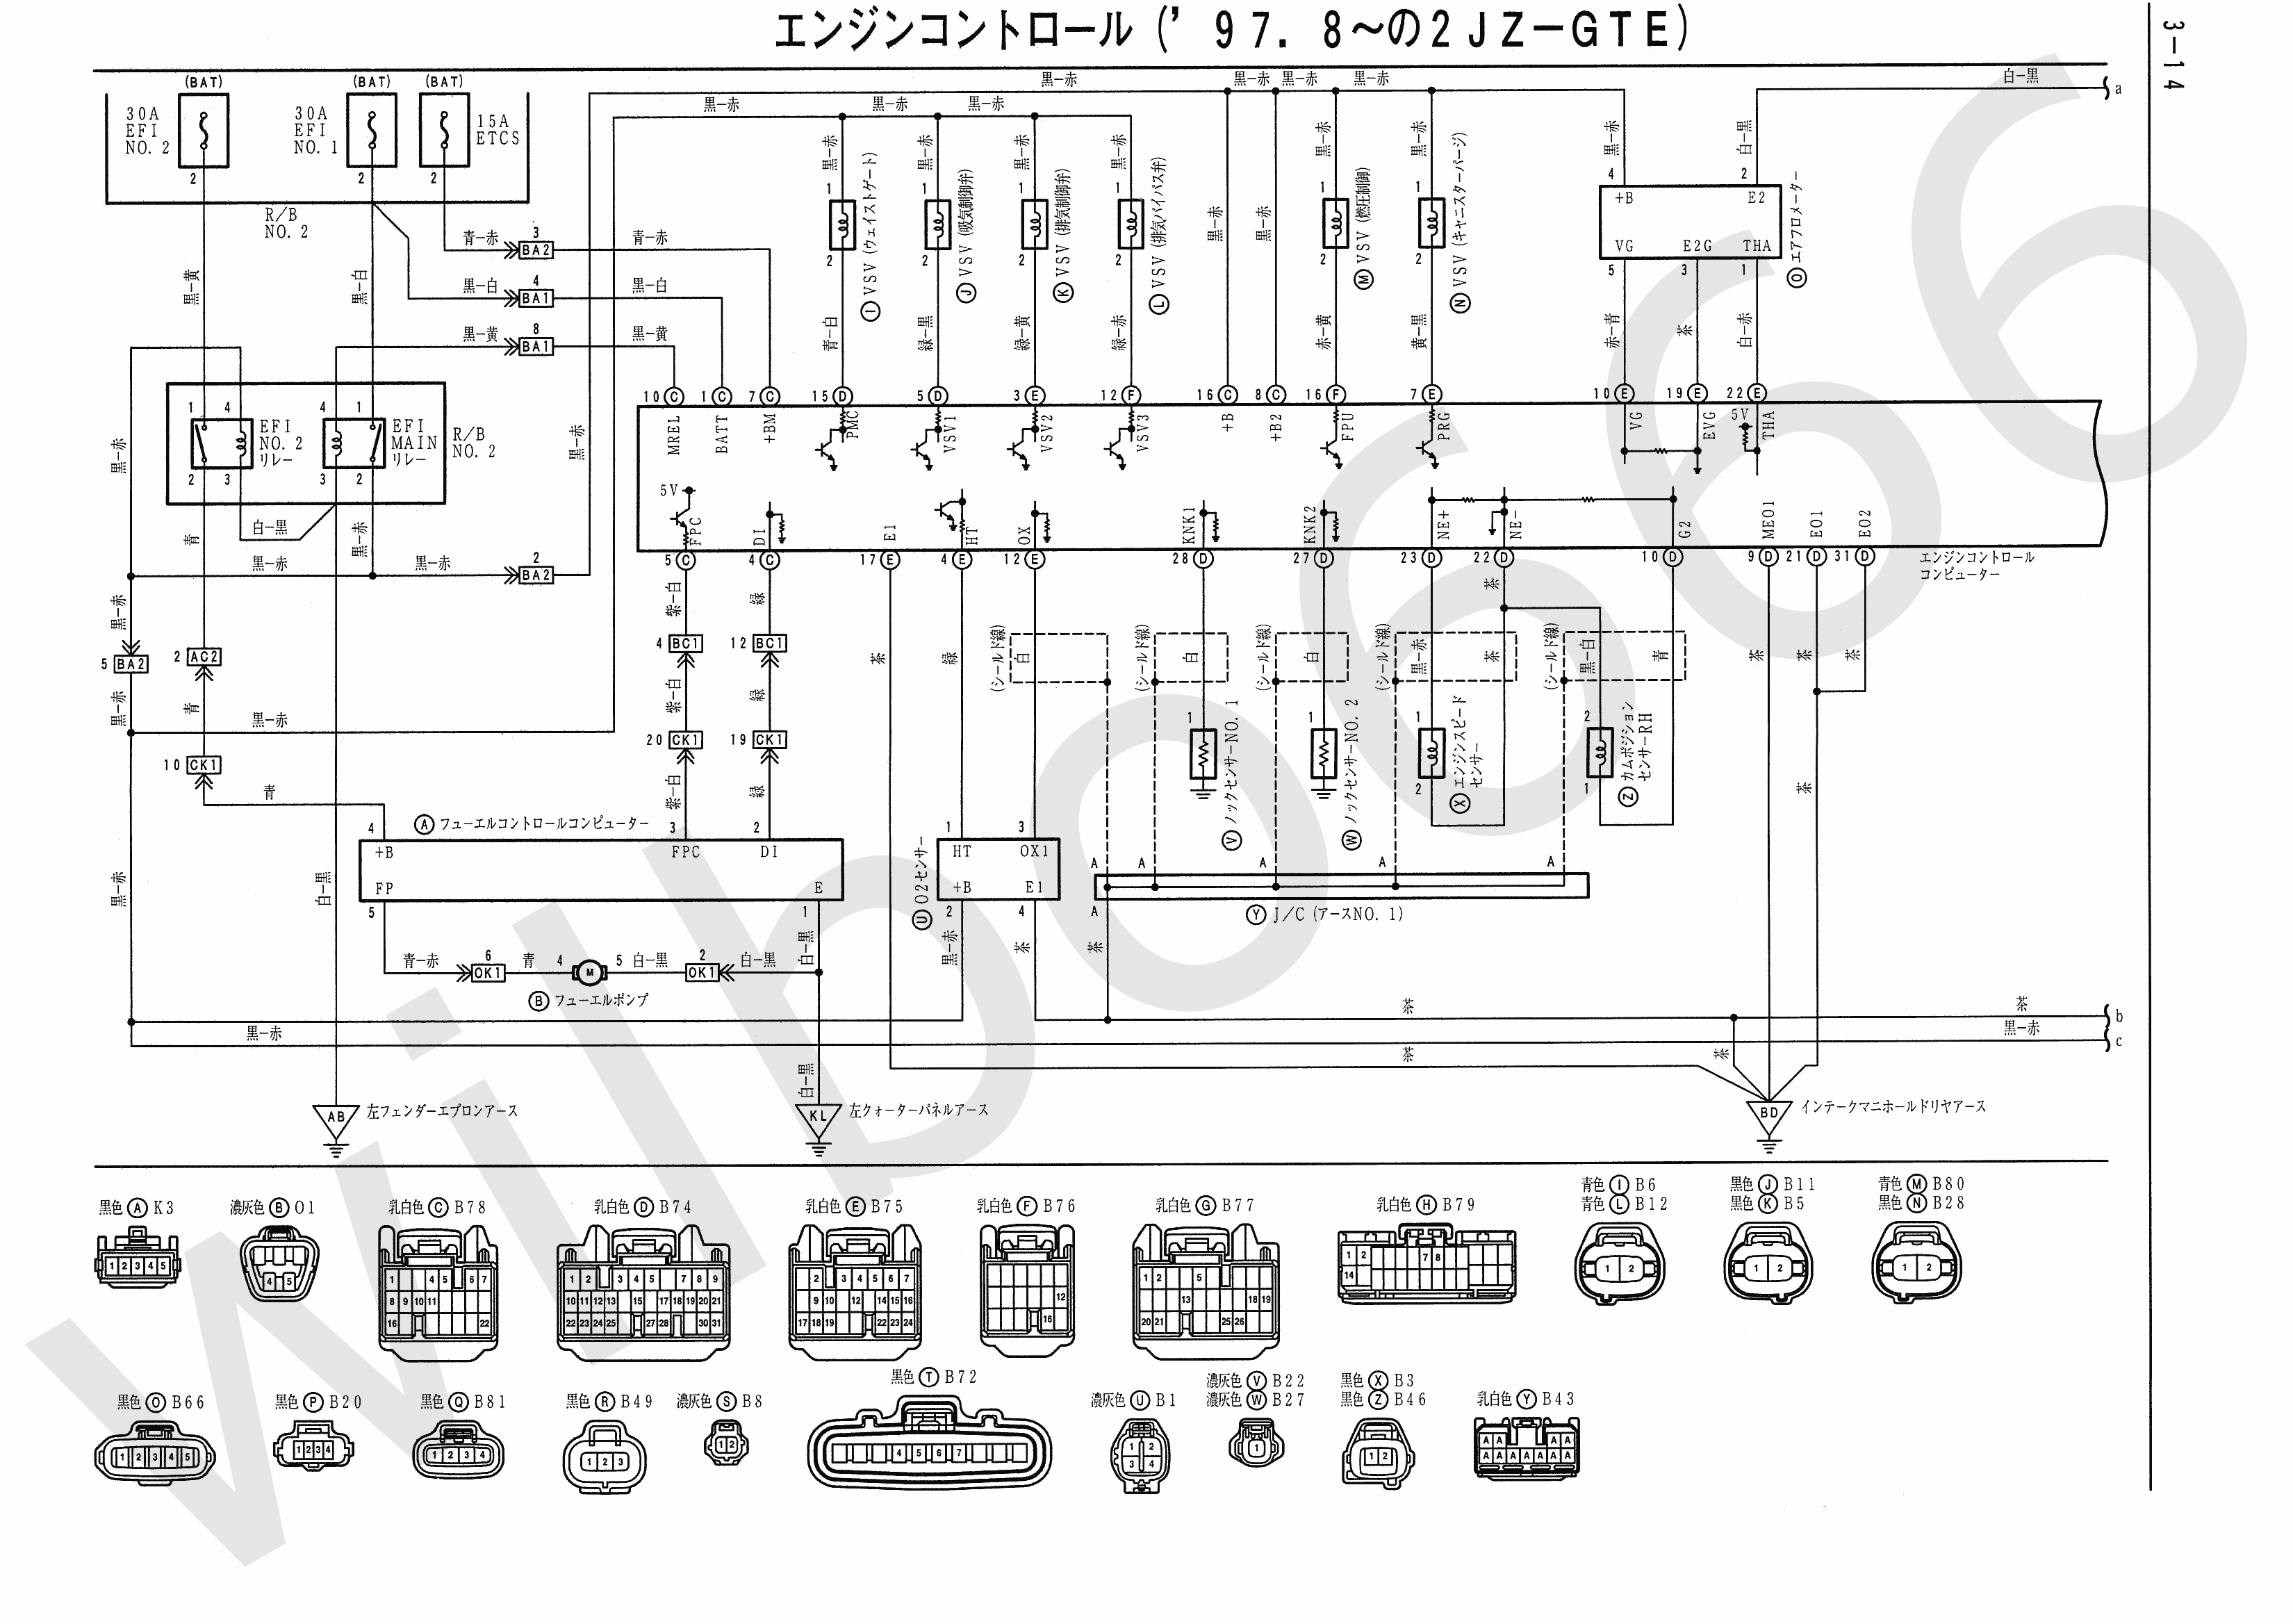 87 supra wiring diagram poc fslacademy uk \u2022supra engine diagram supra free engine image for user 87 toyota supra wiring diagram 88 supra